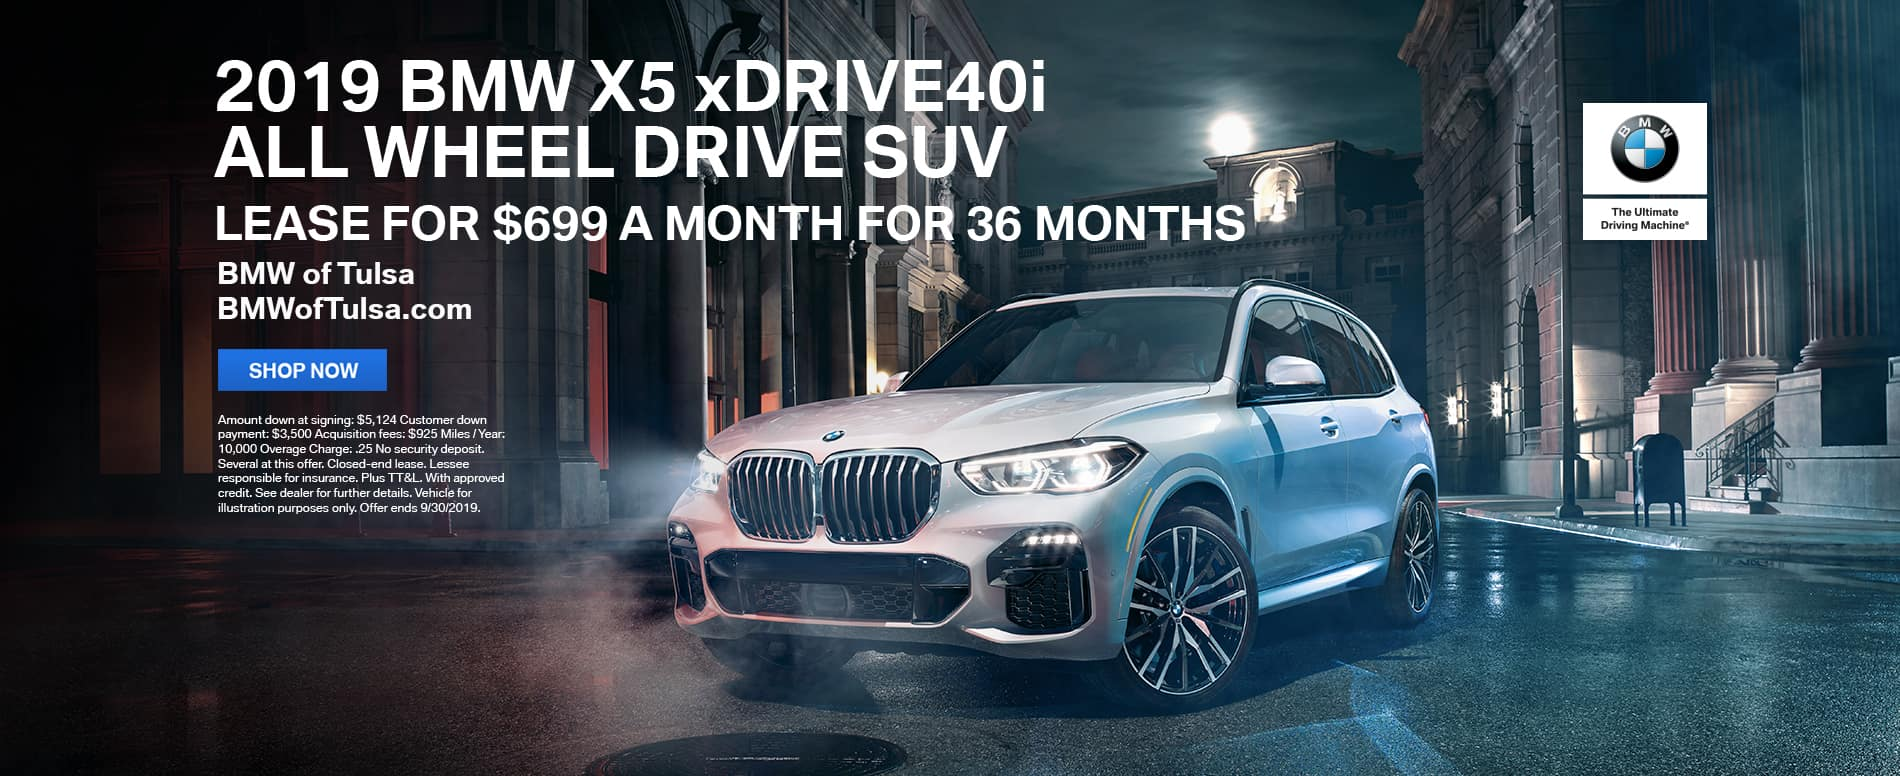 2019_BMW_X5_xDRIVE40i_All_Wheel_Drive_SUV